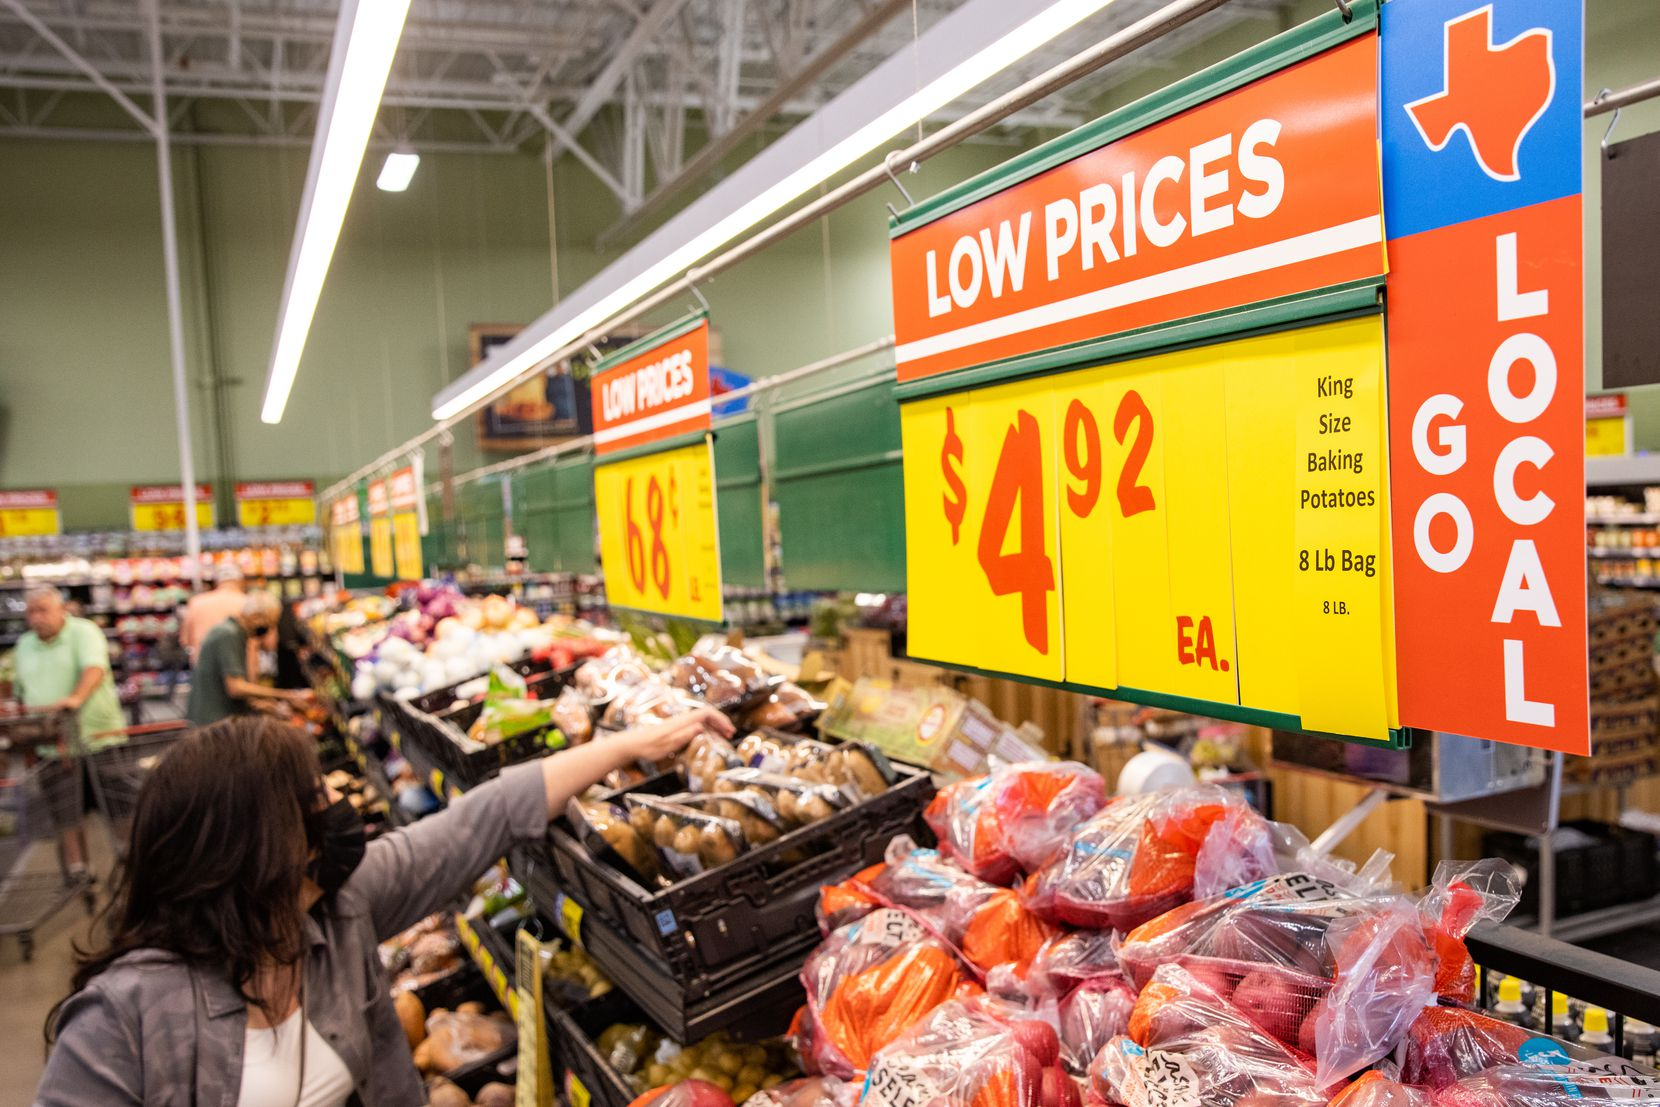 The produce section at the H-E-B in Hudson Oaks.